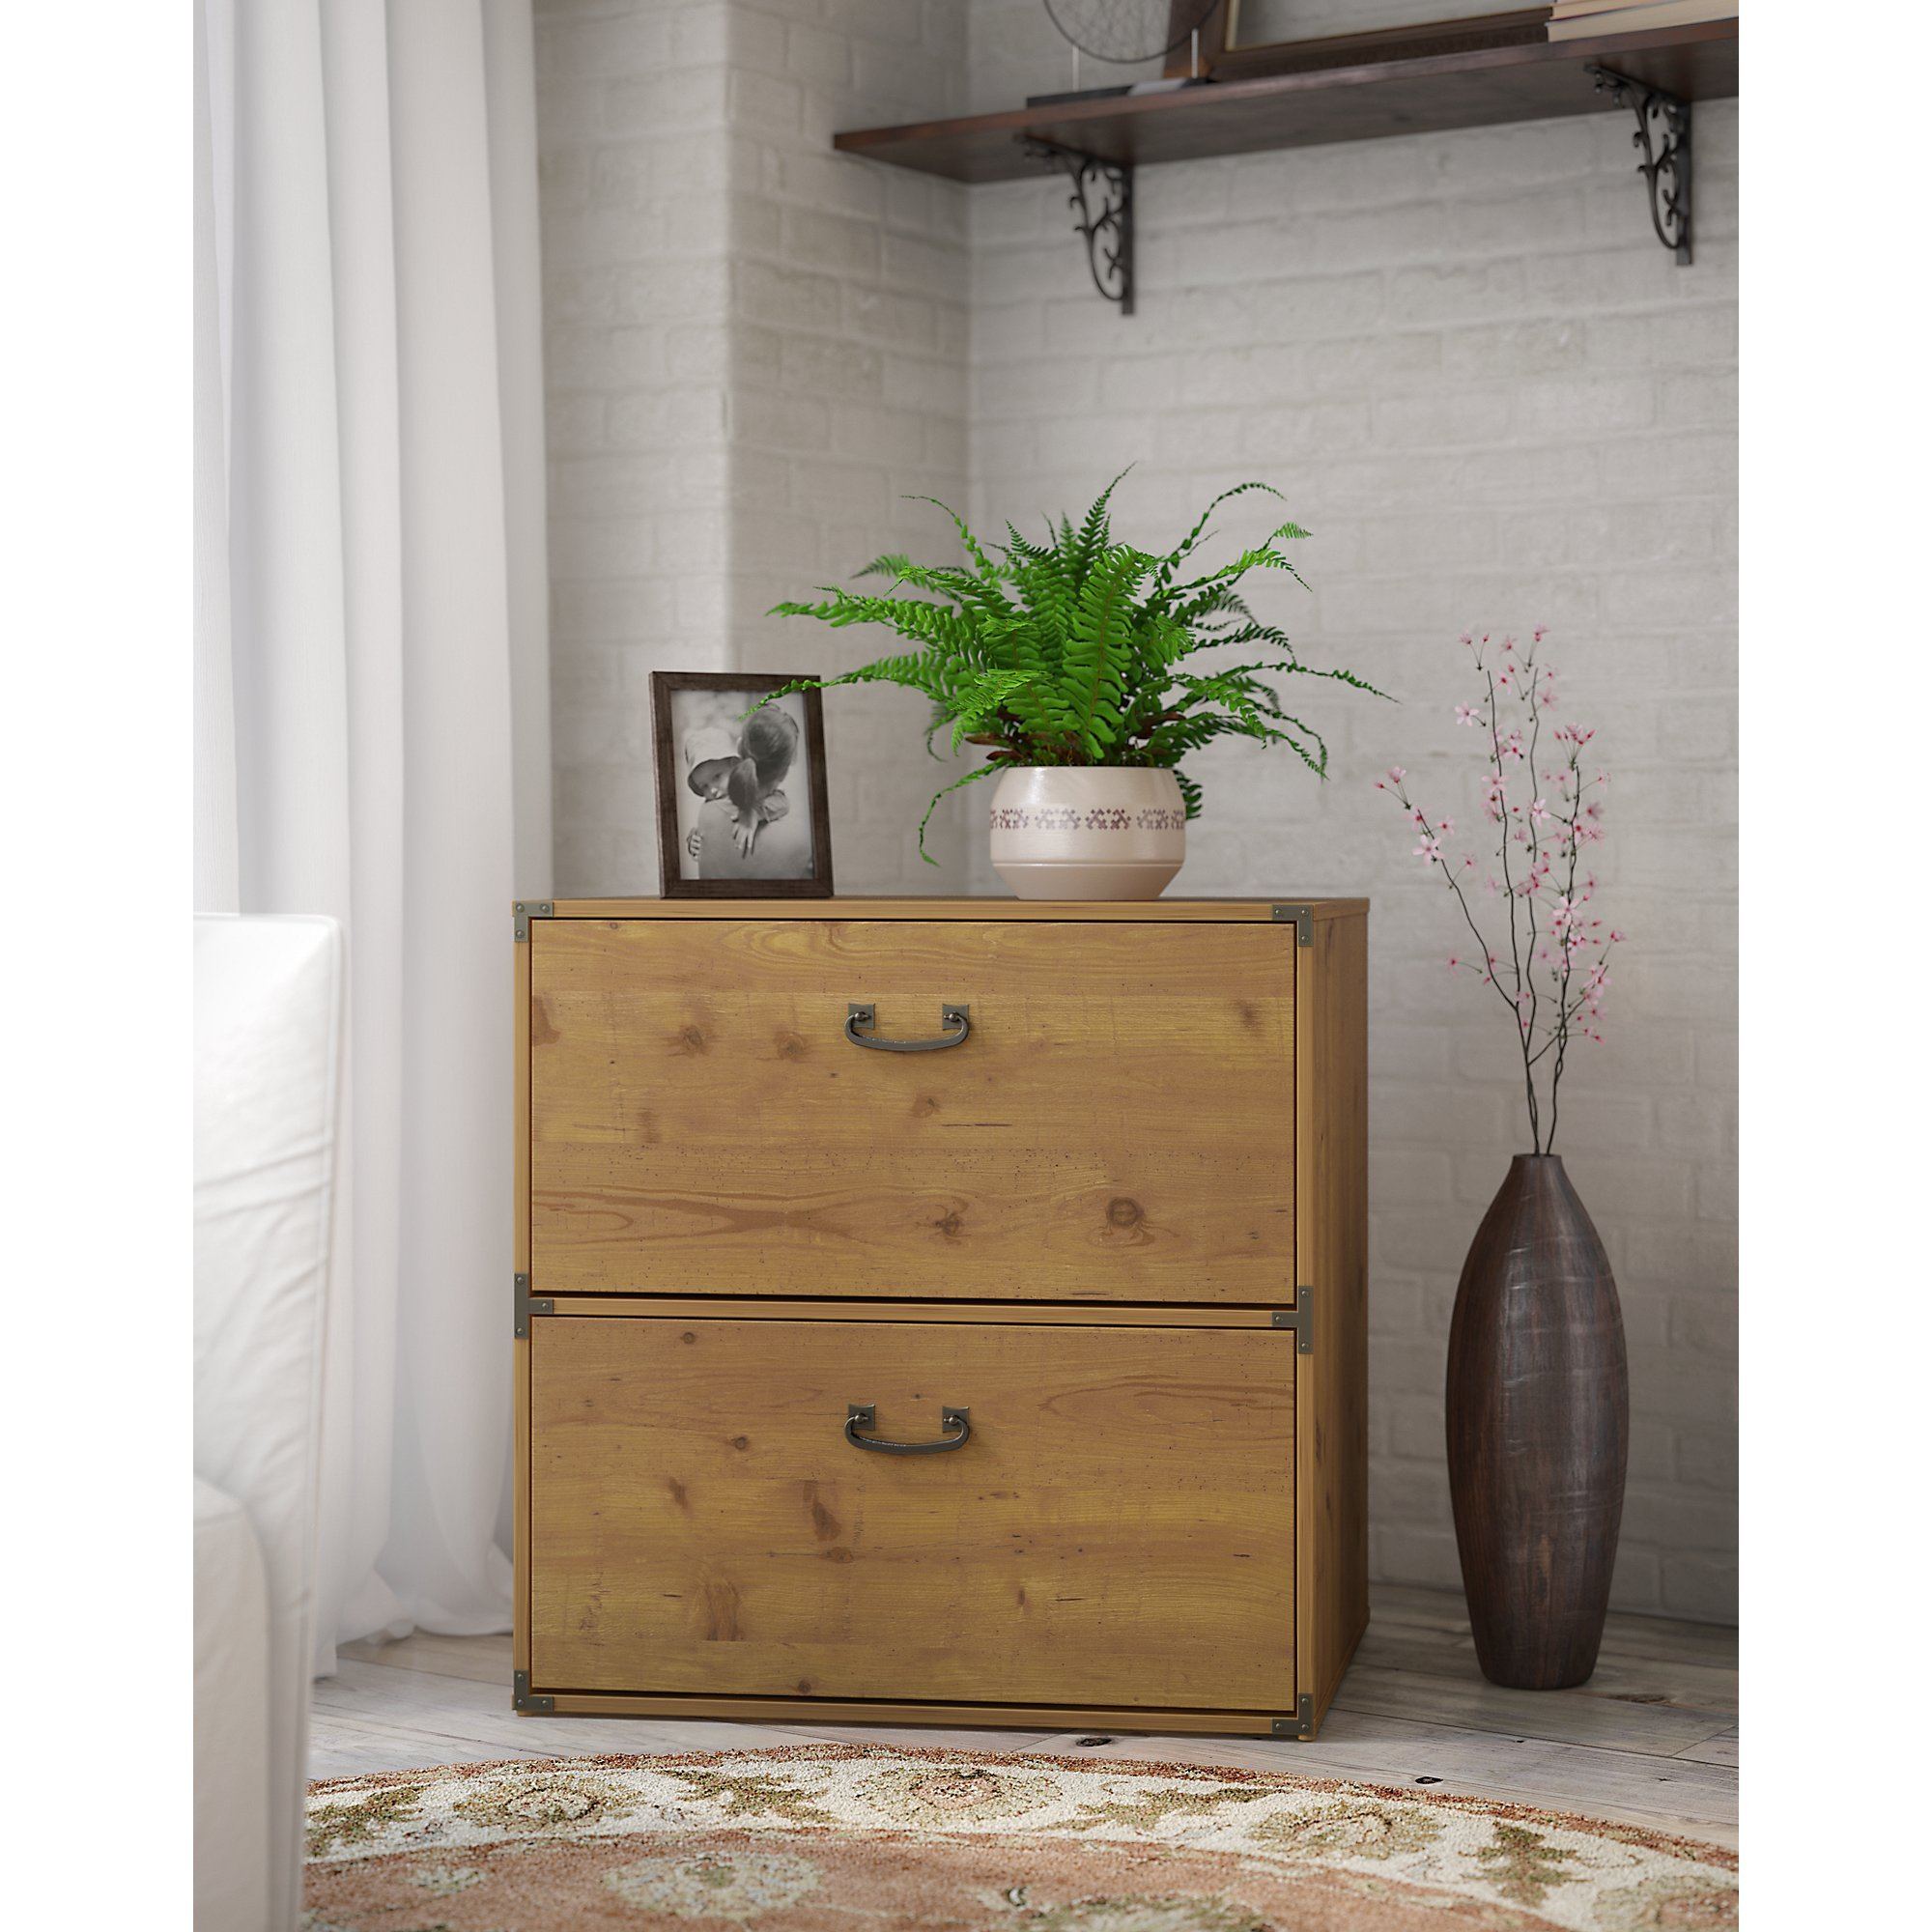 kathy ireland Home by Bush Furniture Ironworks Lateral File Cabinet in Vintage Golden Pine by kathy ireland Home by Bush Furniture